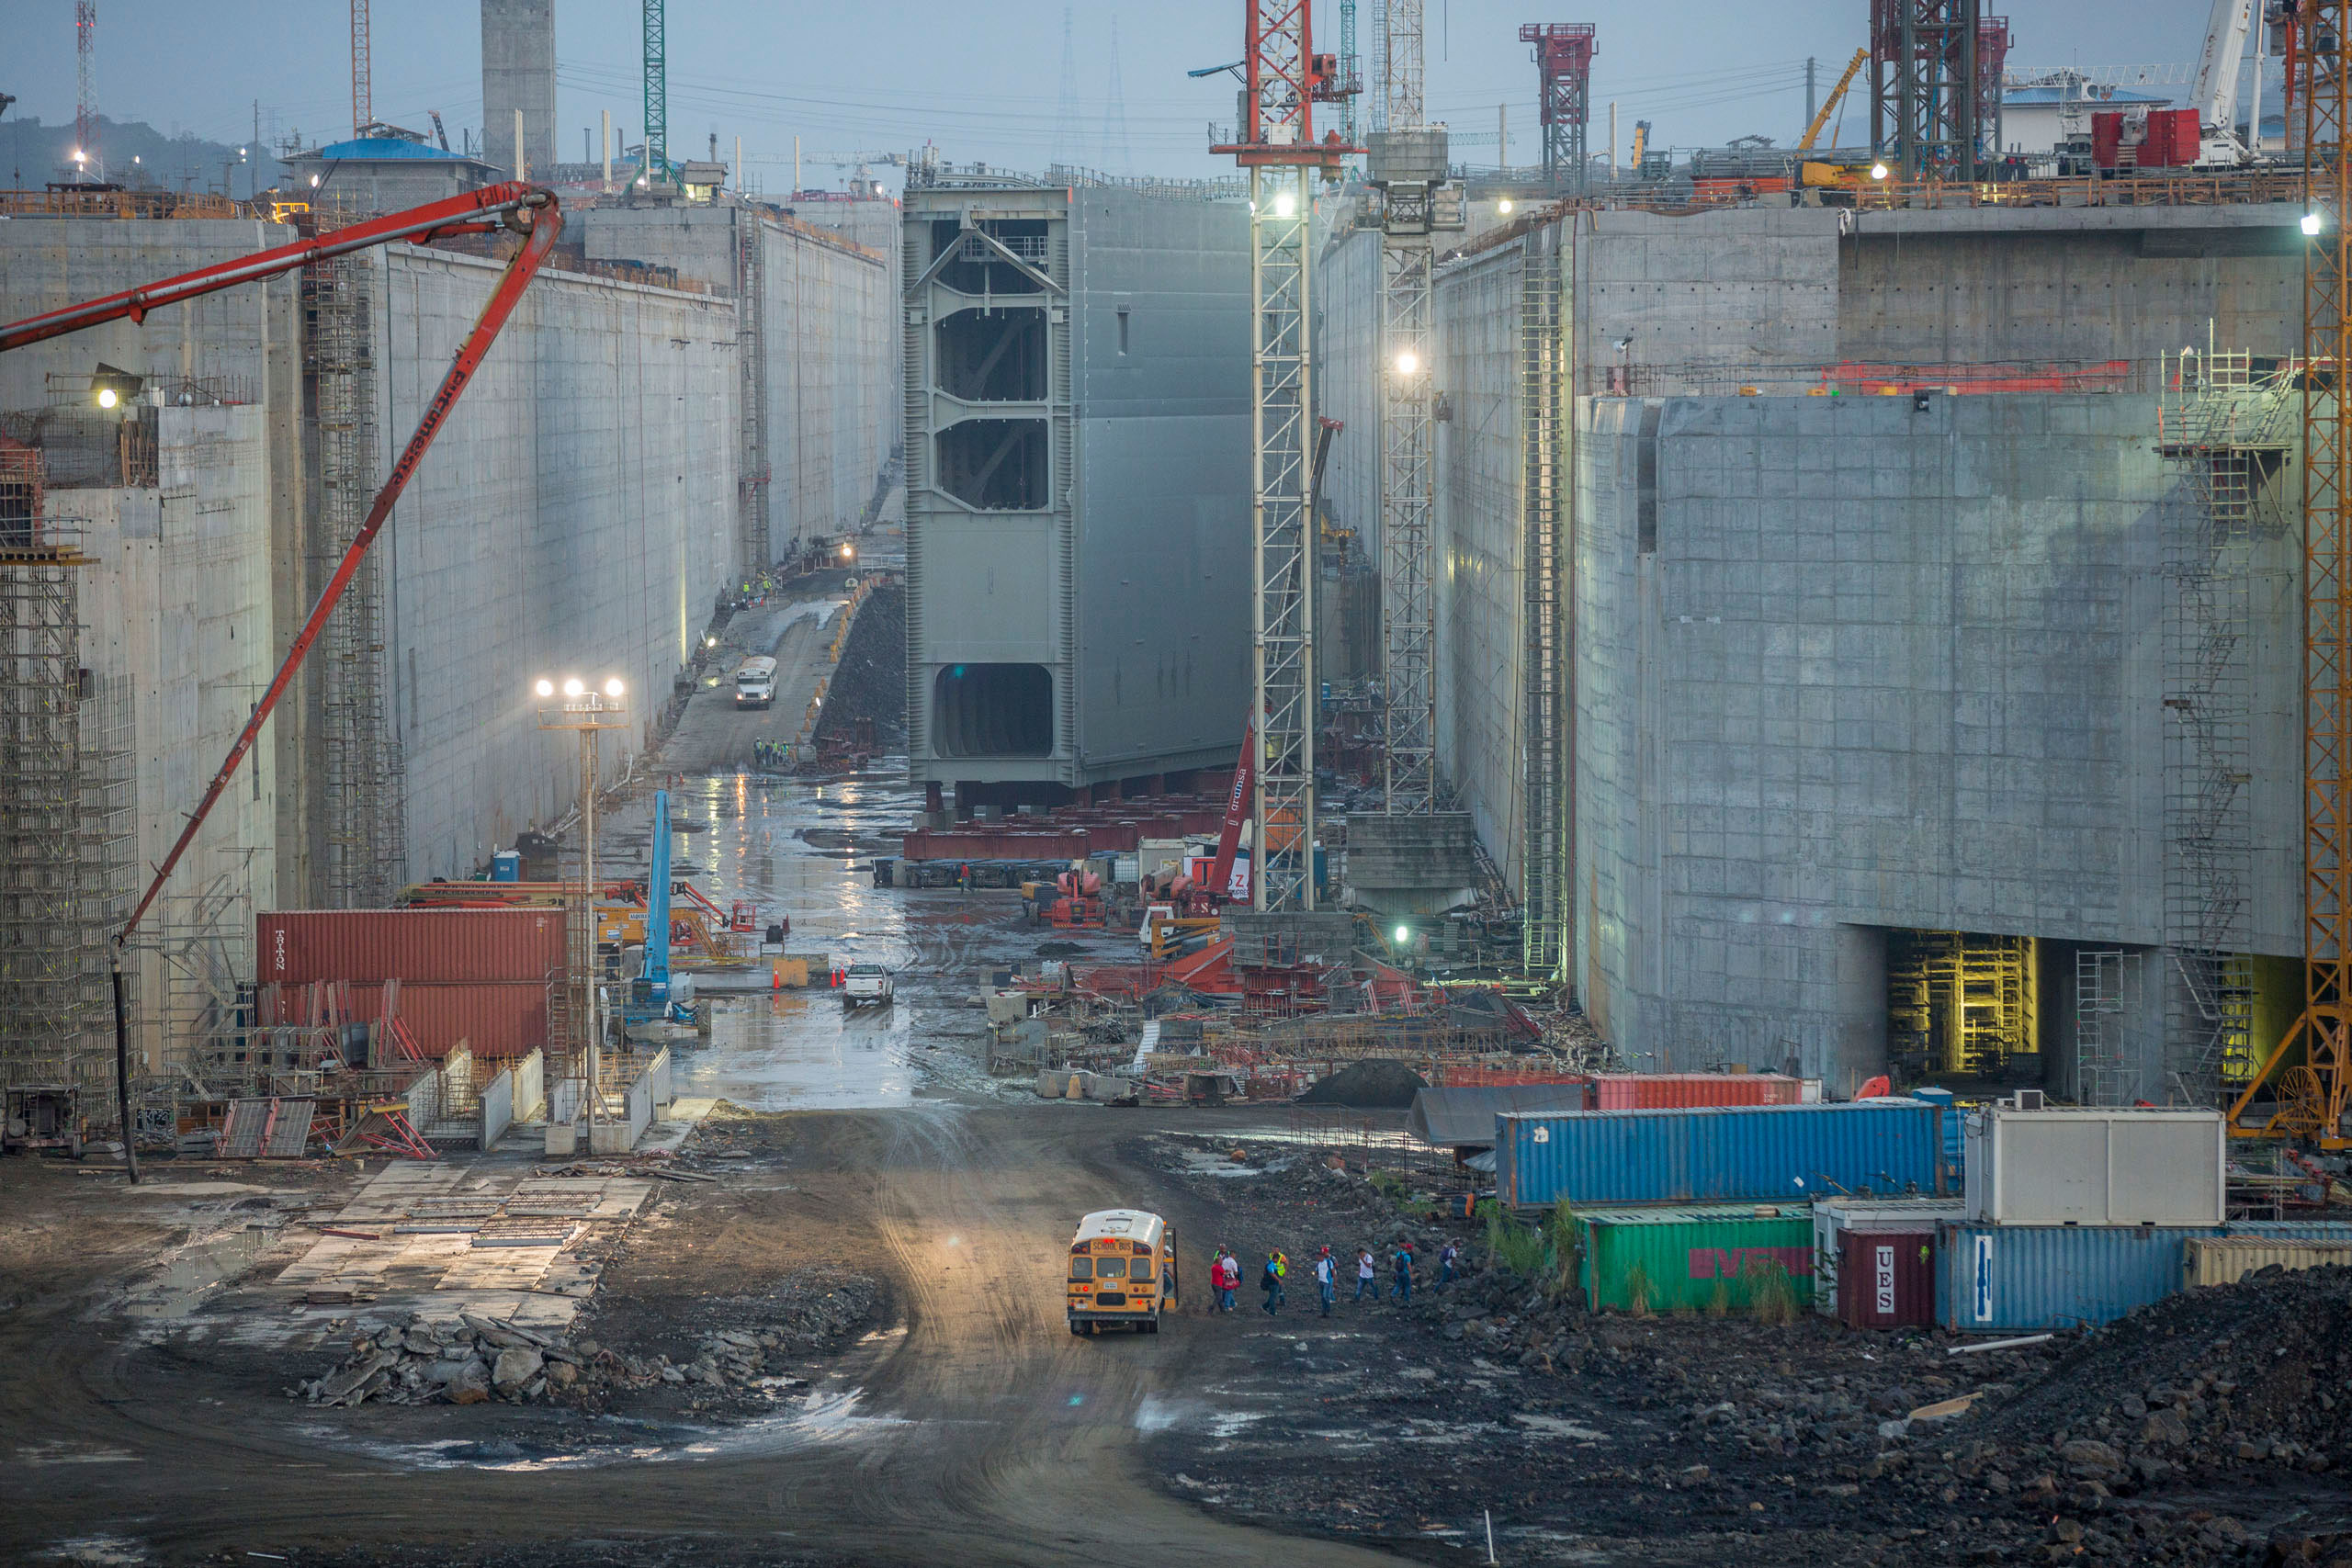 The final lock gate waits to be installed on the Pacific side of the   Panama Canal Expansion project, April 23, 2015.